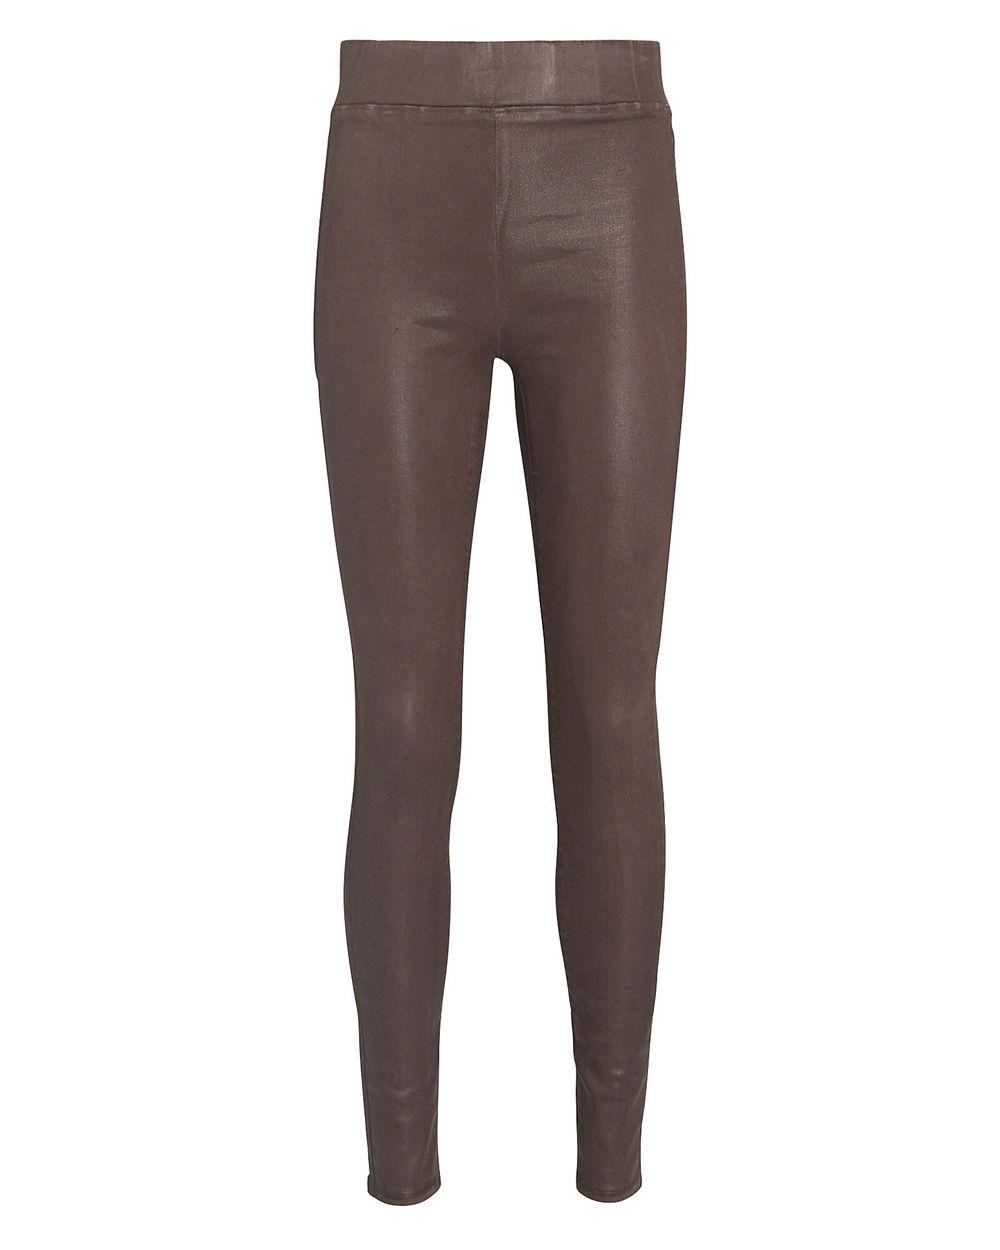 Rochelle Pull On Coated Legging Item # 2443MFDC